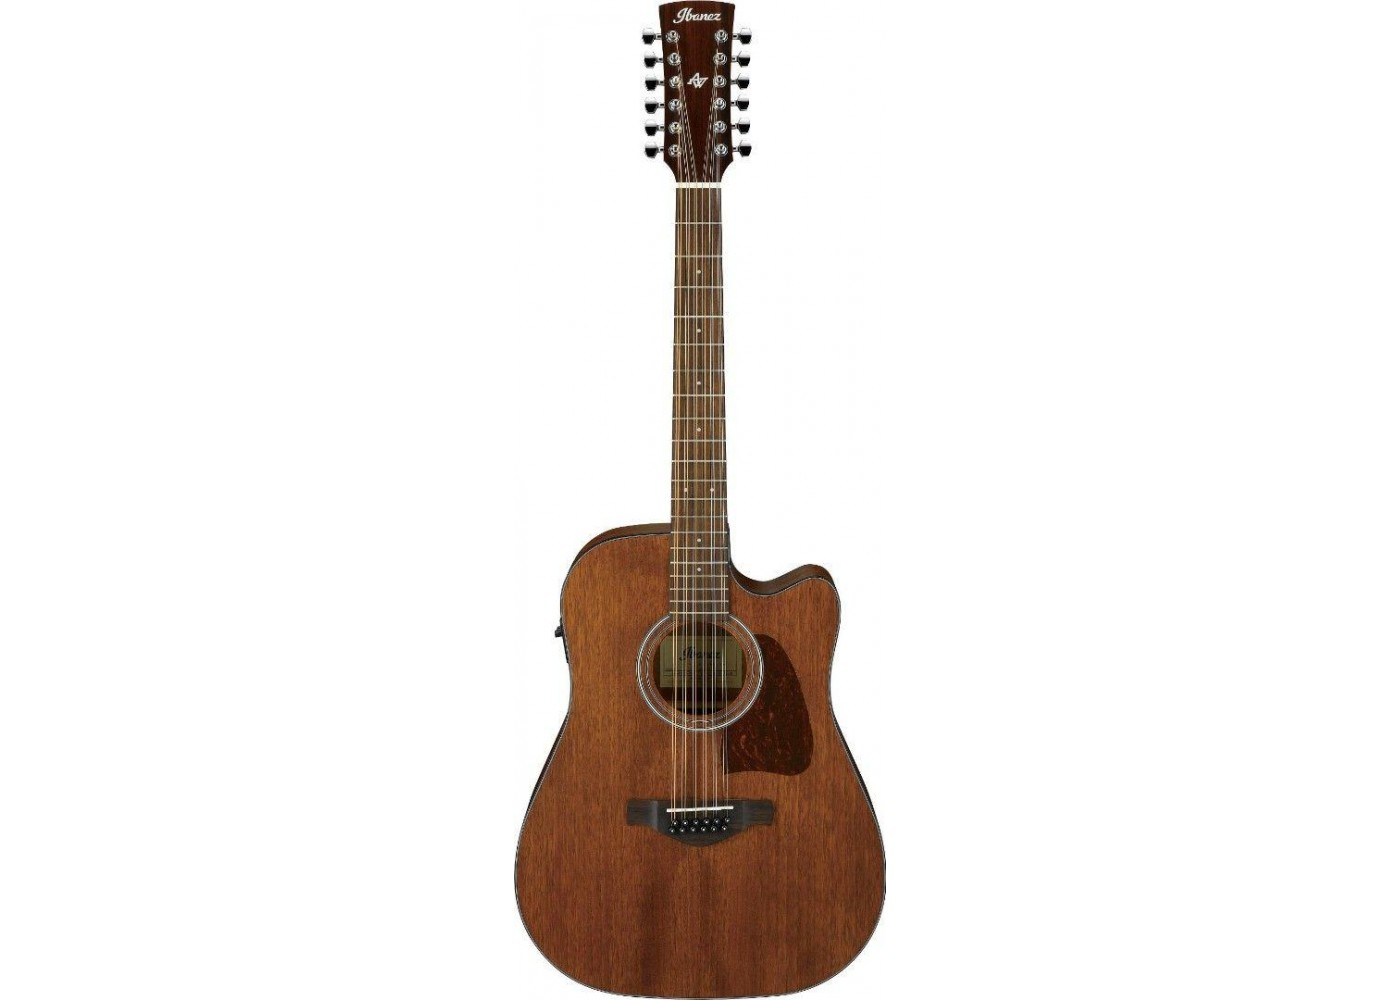 ibanez artwood aw5412ceopn 12 string dreadnought size acoustic electric guitar. Black Bedroom Furniture Sets. Home Design Ideas